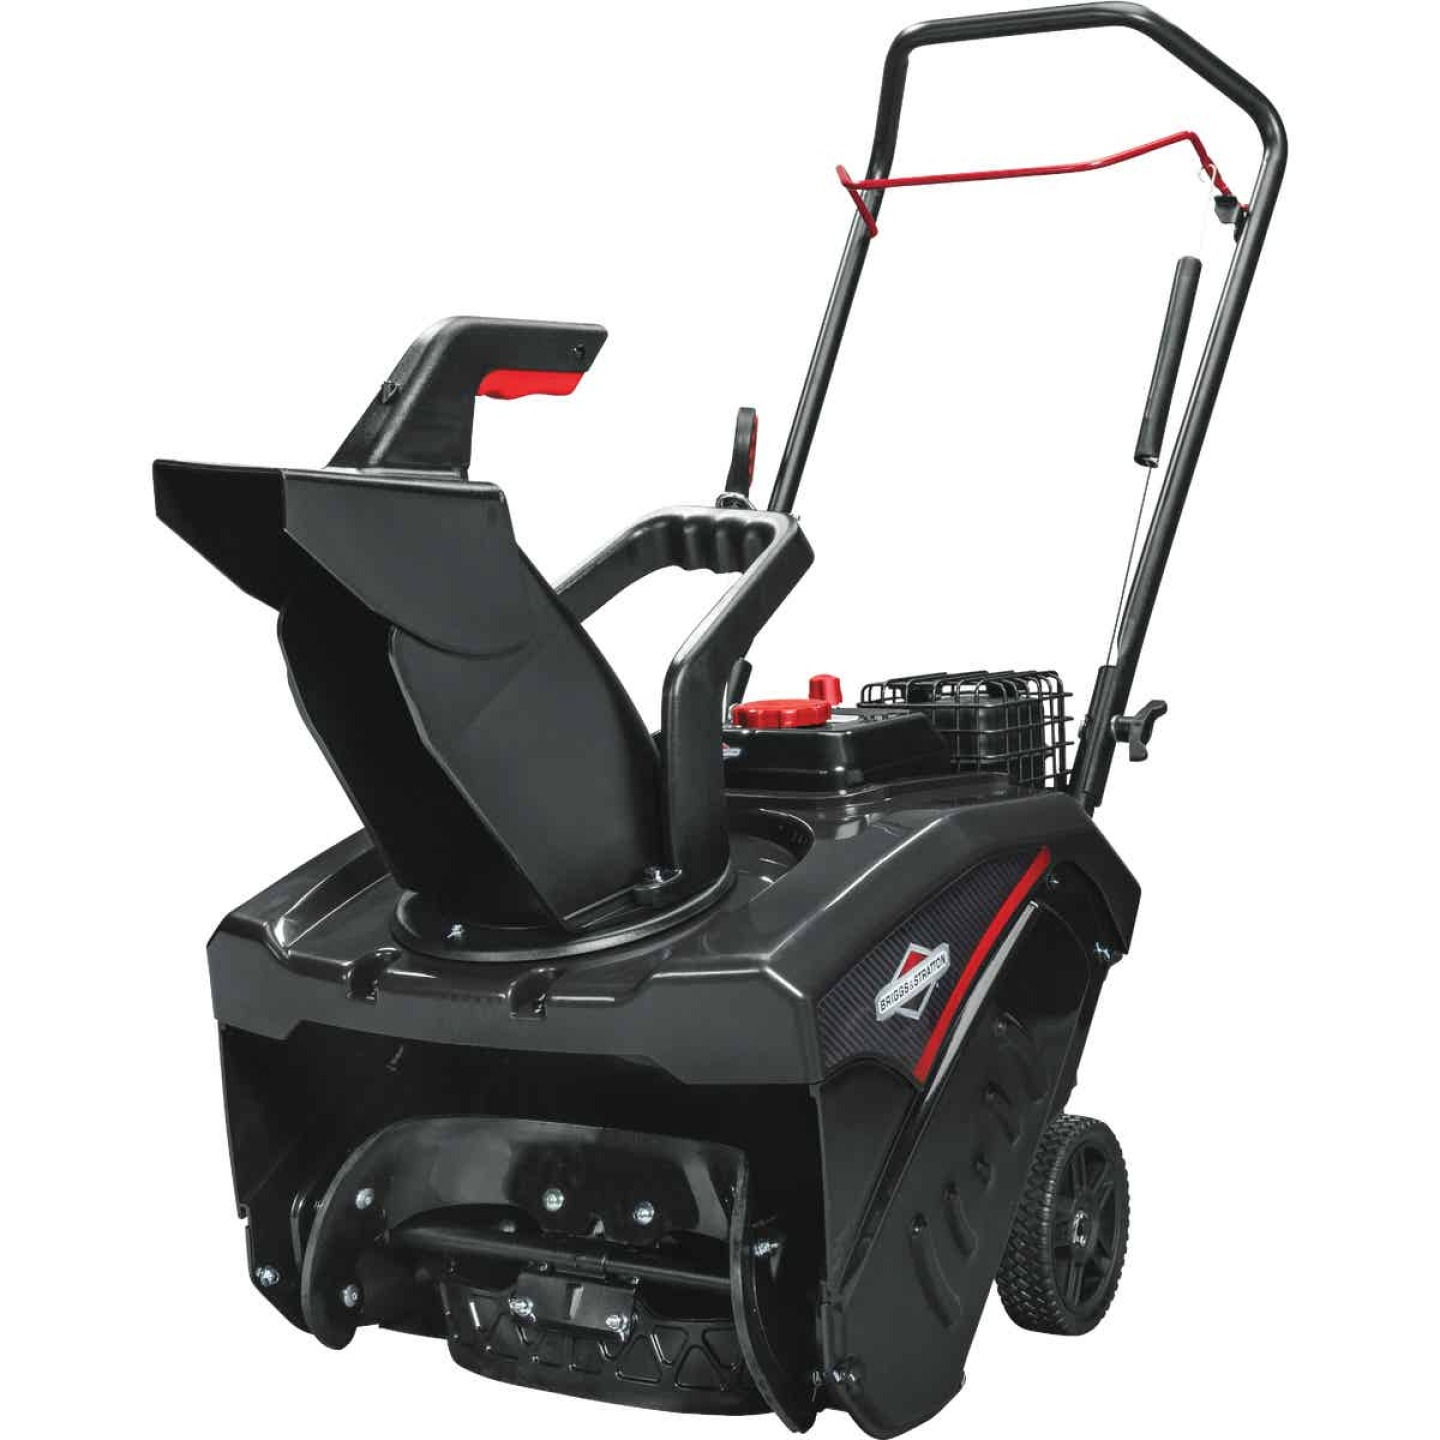 Briggs & Stratton 18 In. 127cc Single Stage 5.5 TP Manual Rotation Gas Snow Blower Image 2